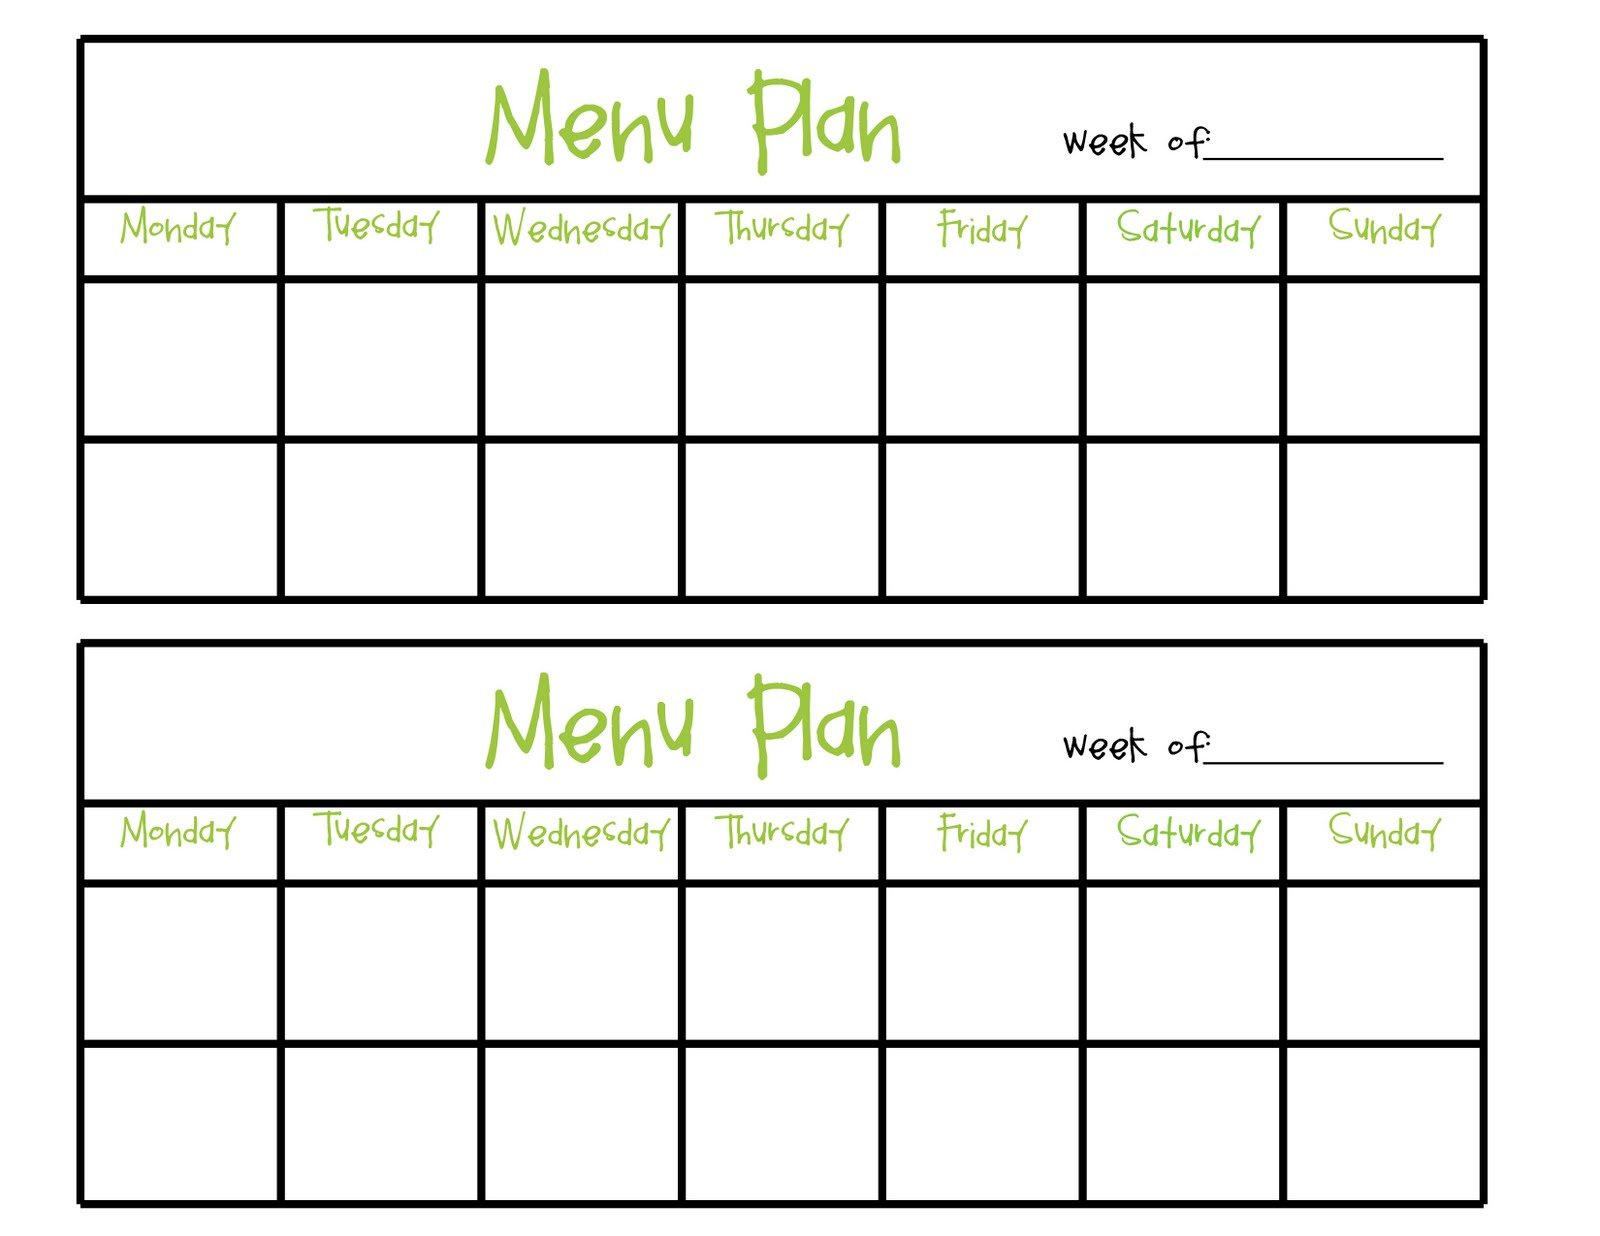 Simply Complicated: Menu Planning Two Week Food Calendar